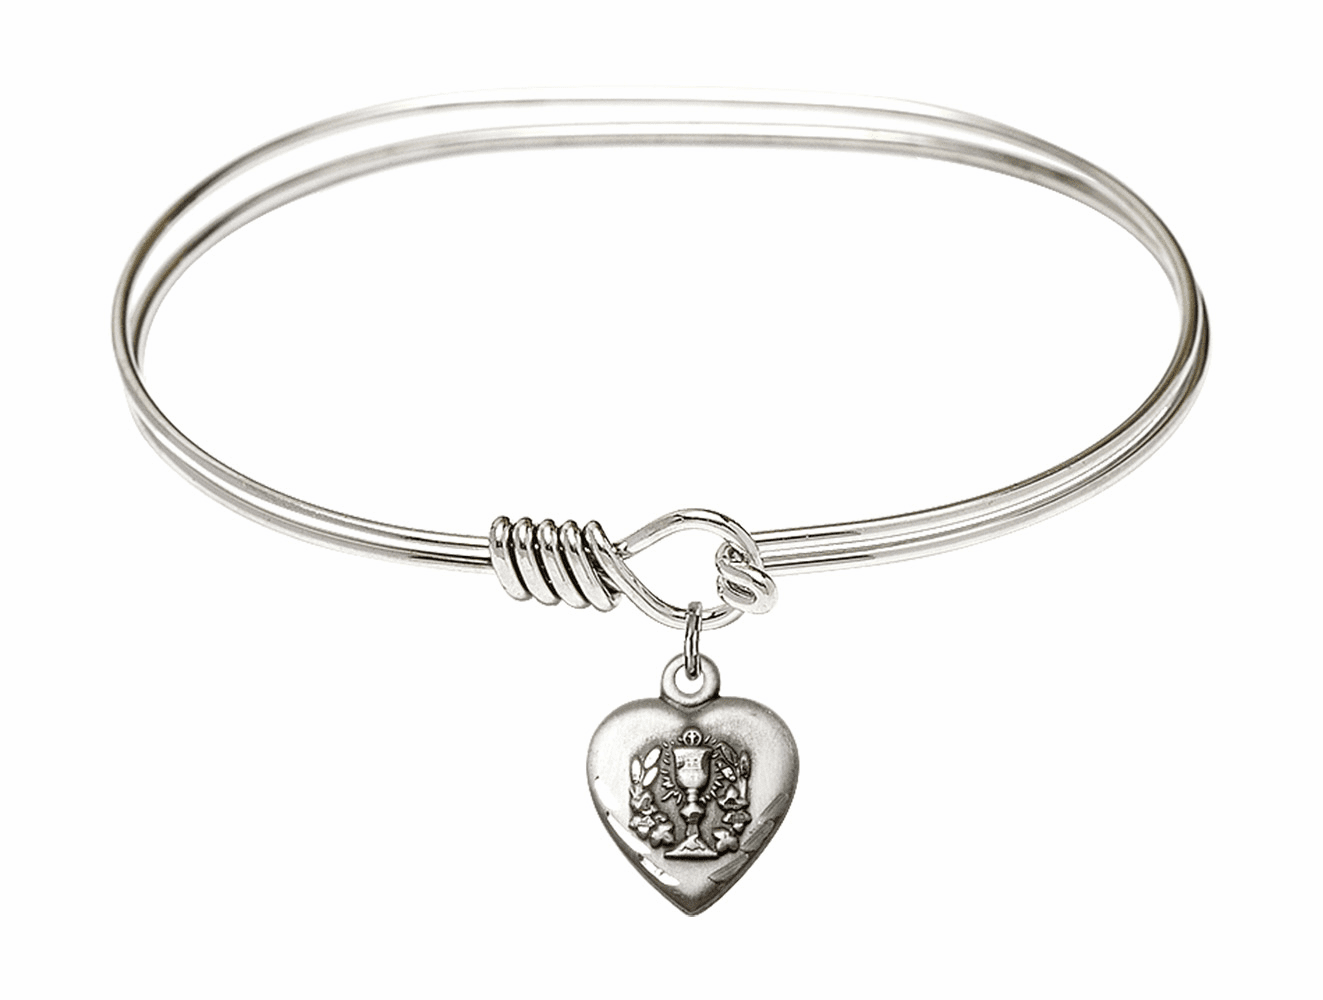 Round Eye Hook Bangle Bracelet w/Communion Heart Sterling Silver Charm by Bliss Mfg